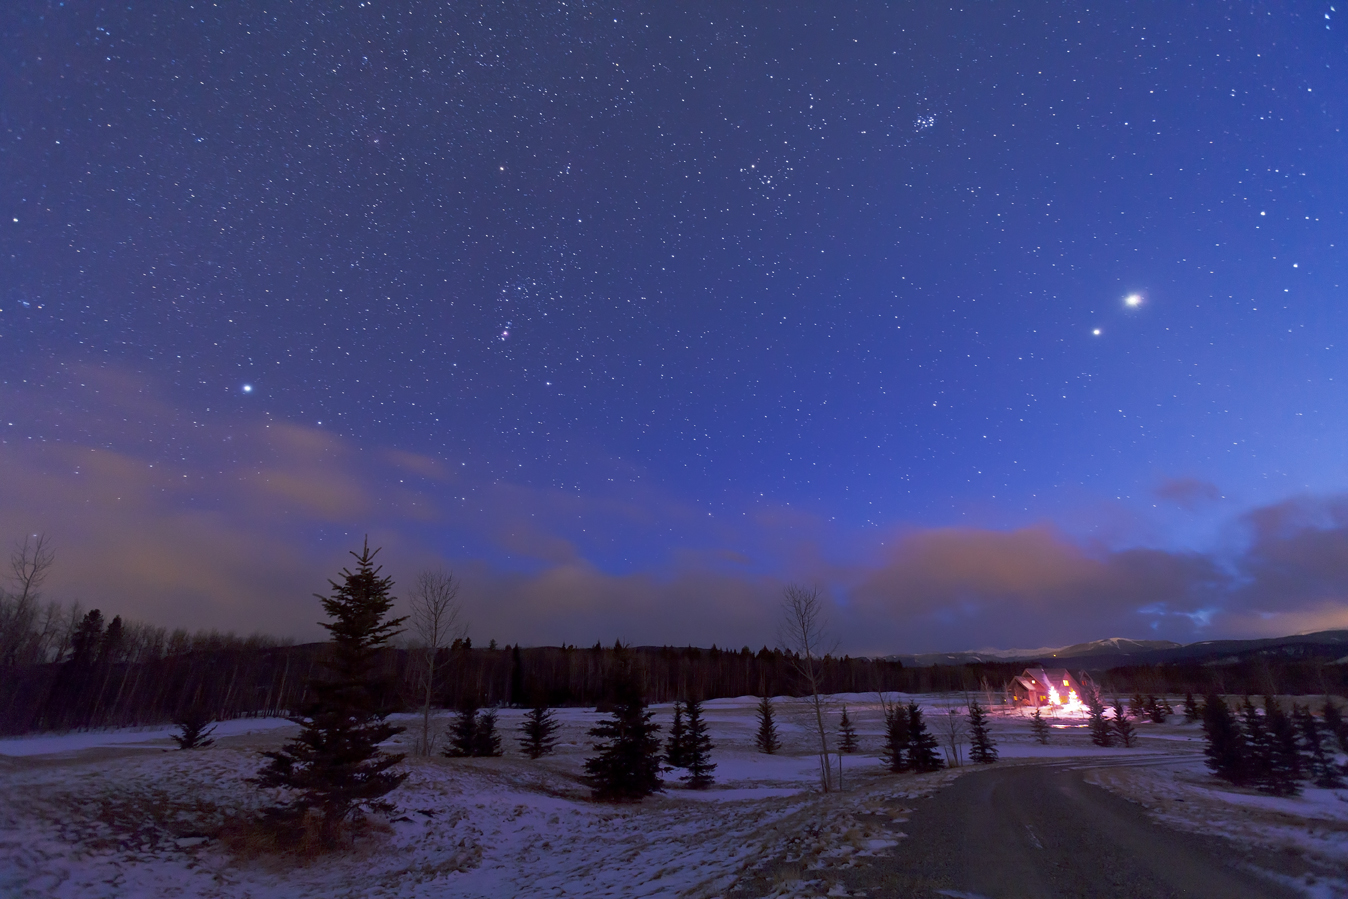 winter night sky planets - photo #17